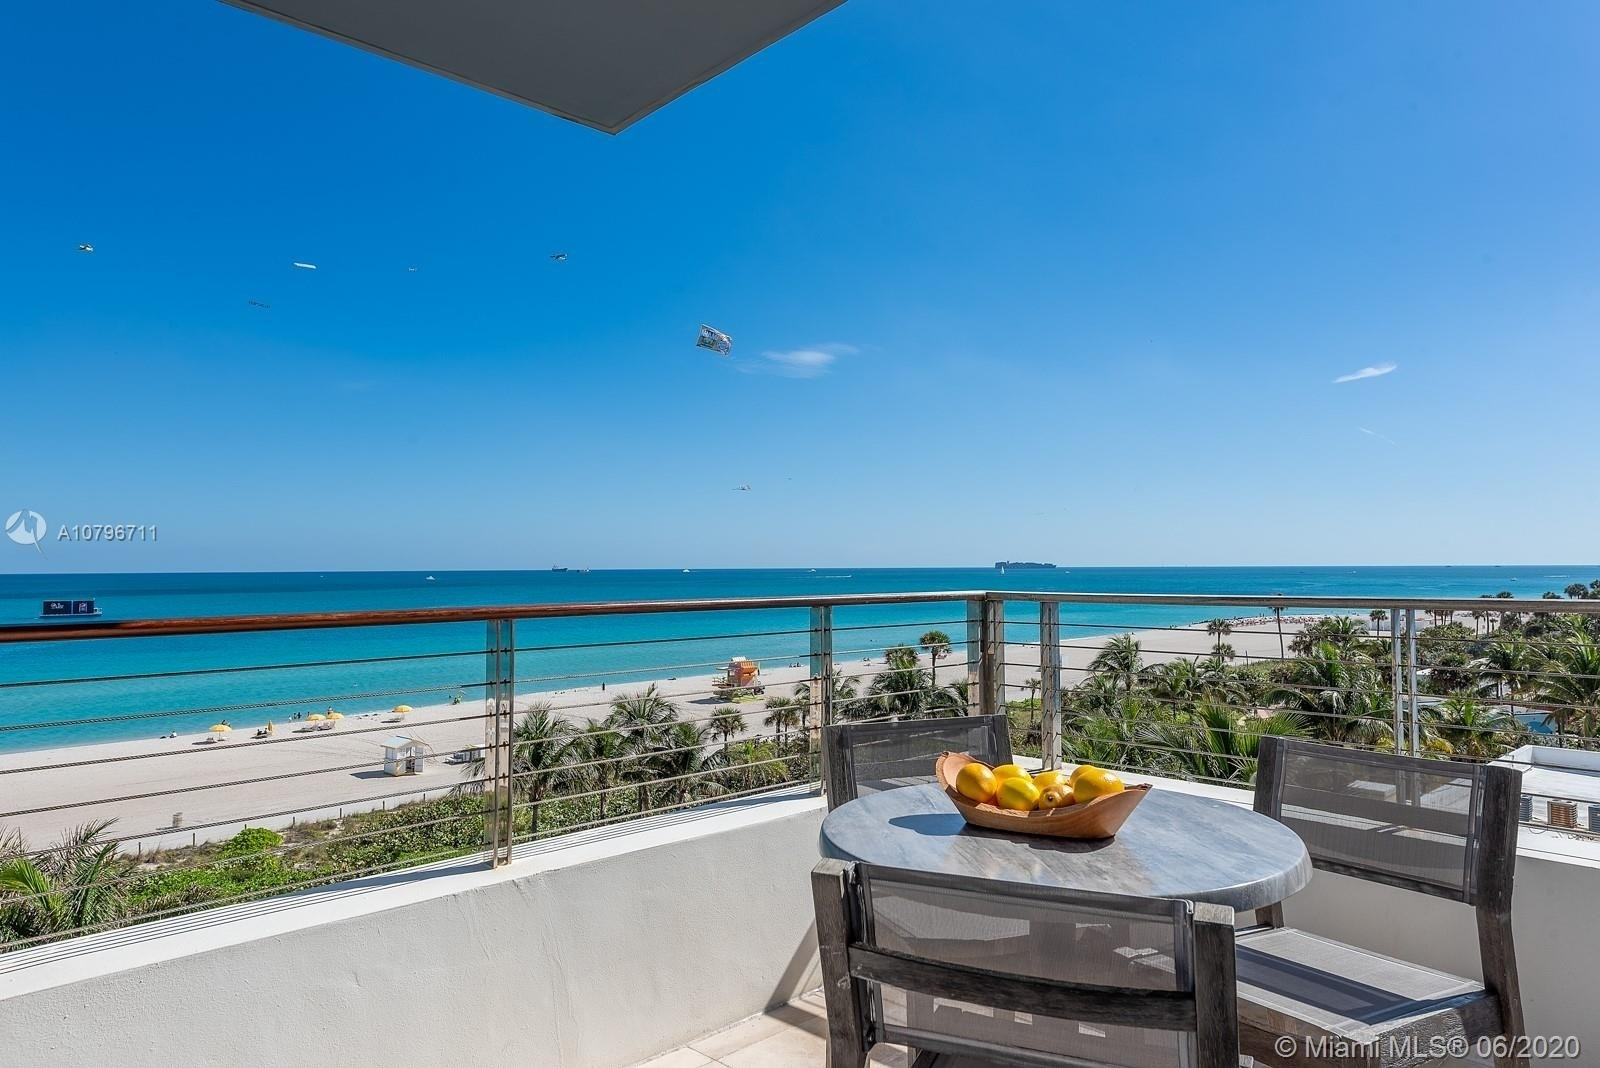 Property at 3651 Collins Ave , 600 Ocean Front, Miami Beach, FL 33140